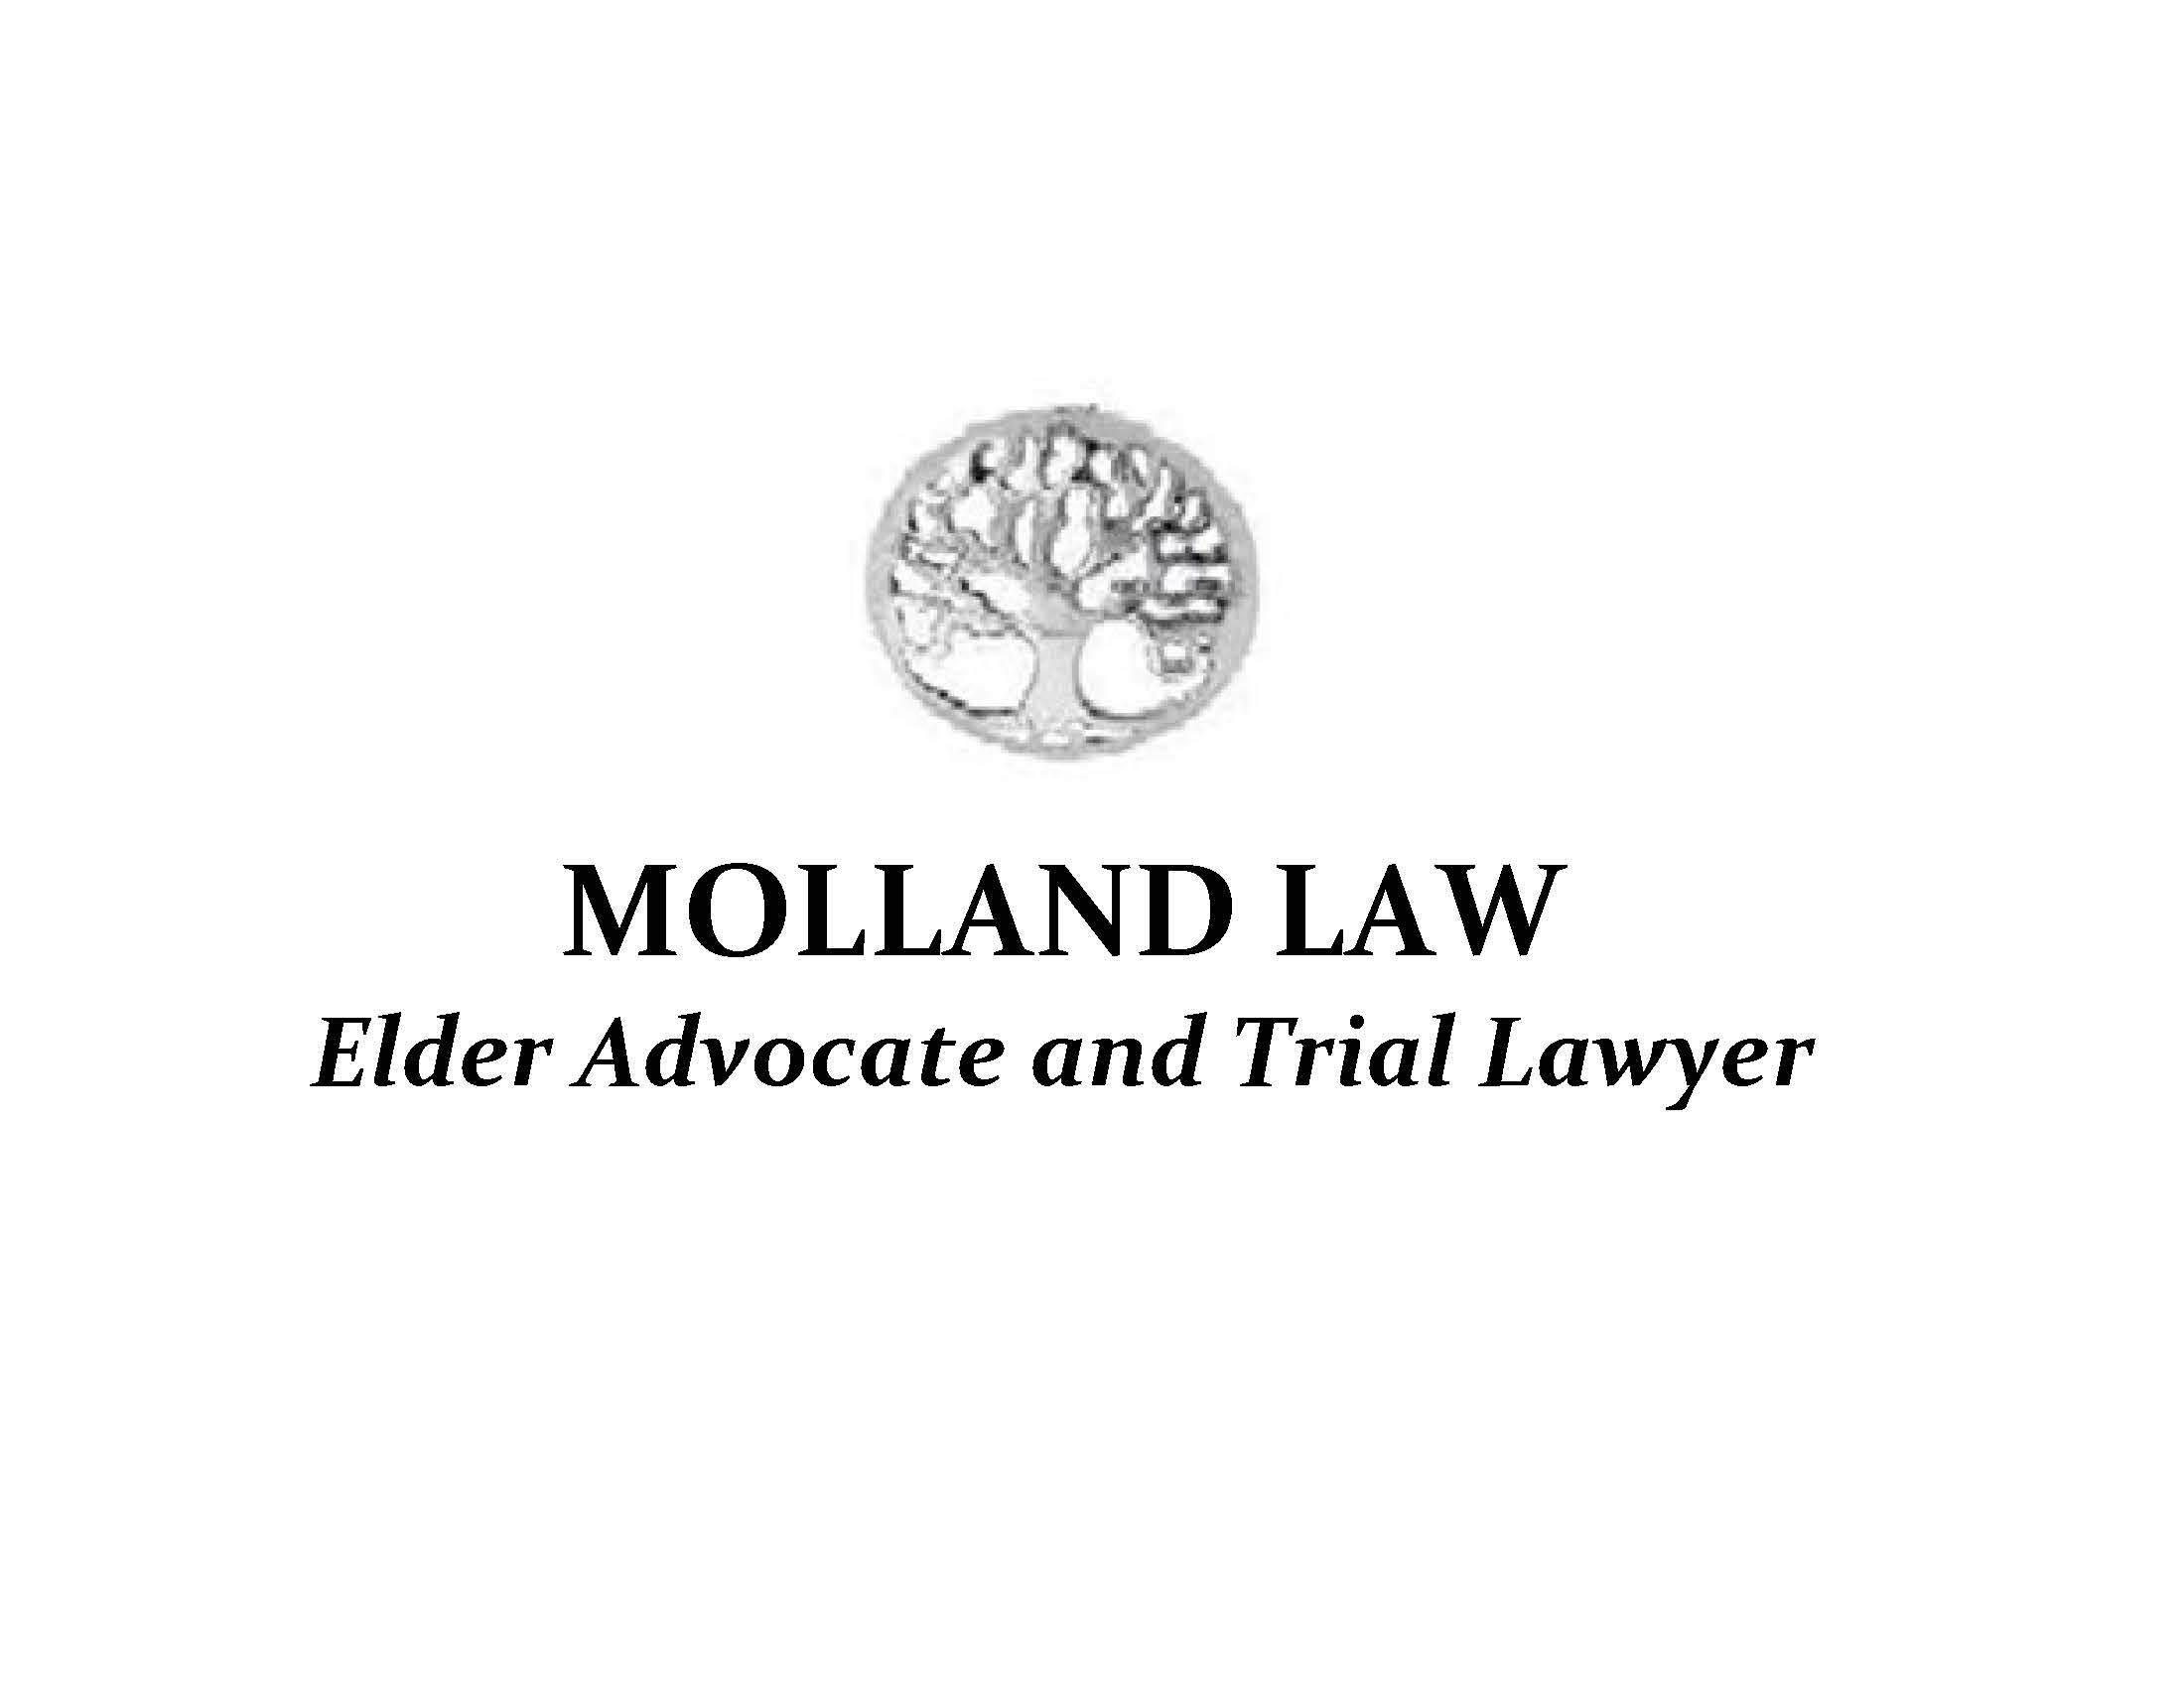 Retirement icon moreover Homeinsteadpoco furthermore Can Use Medicaid Pay Long Term Care furthermore Molland Law as well Module Events View. on elder care resources